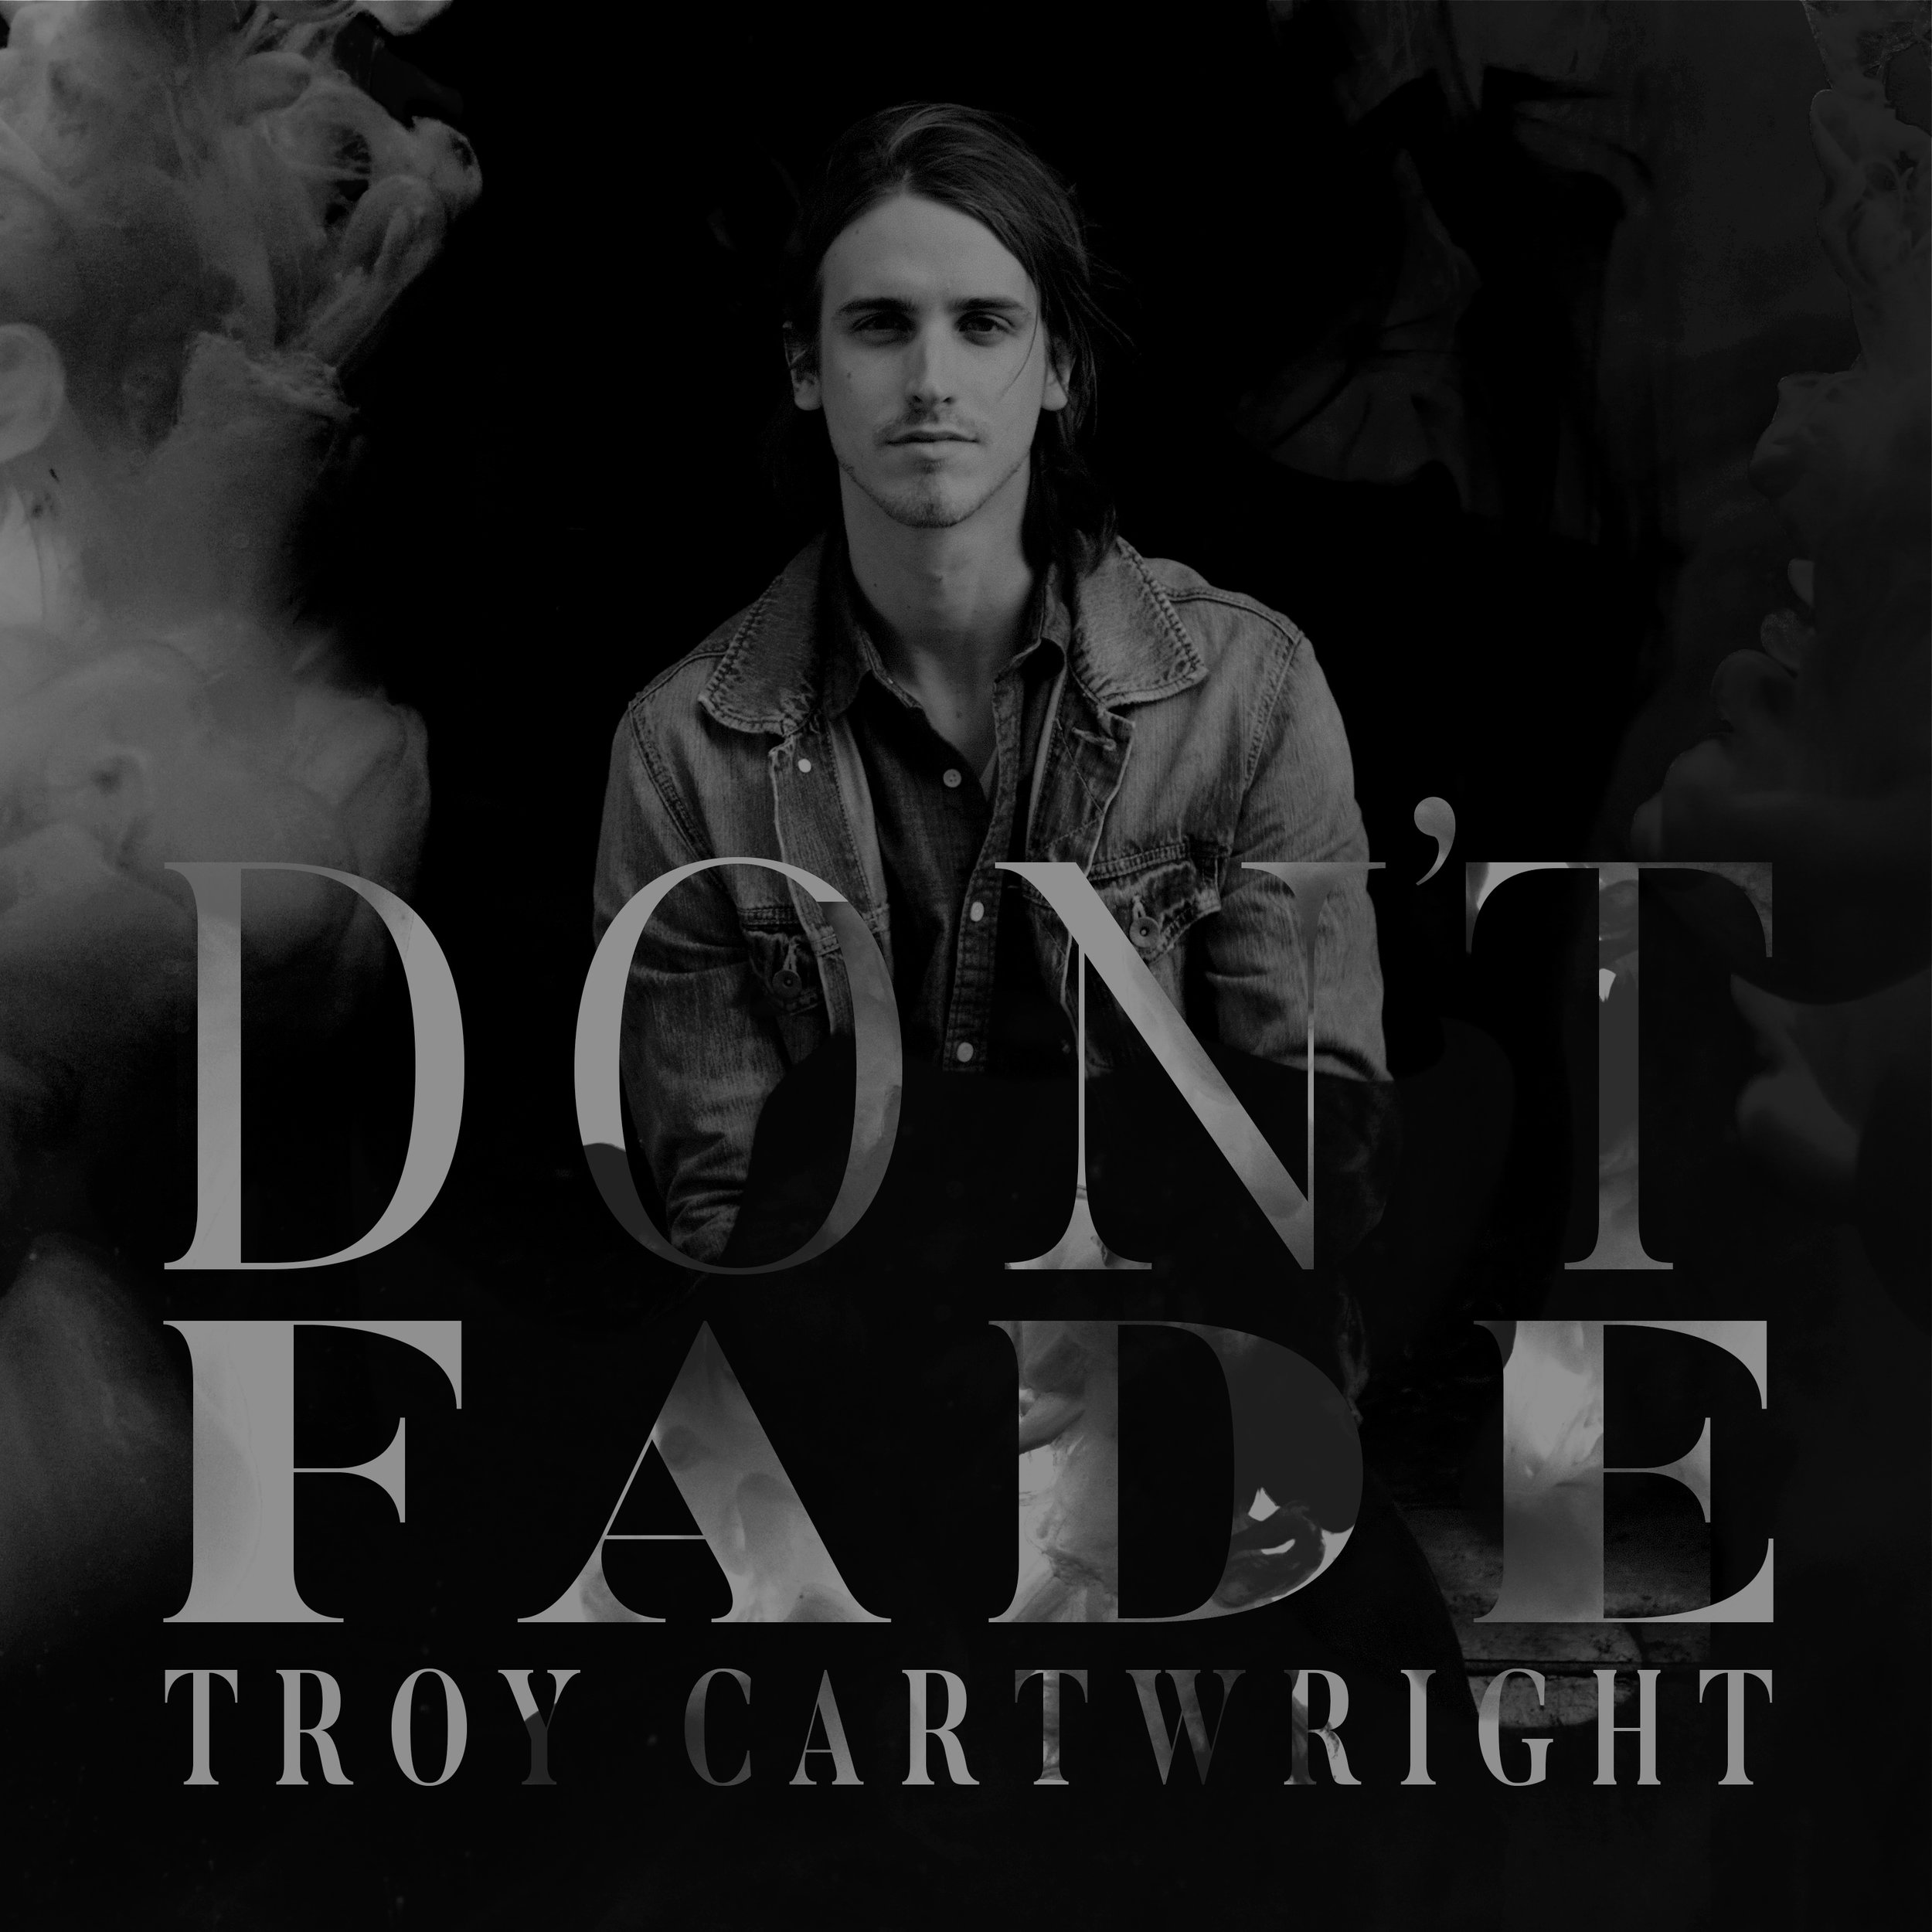 Troy Cartwright Don't Fade